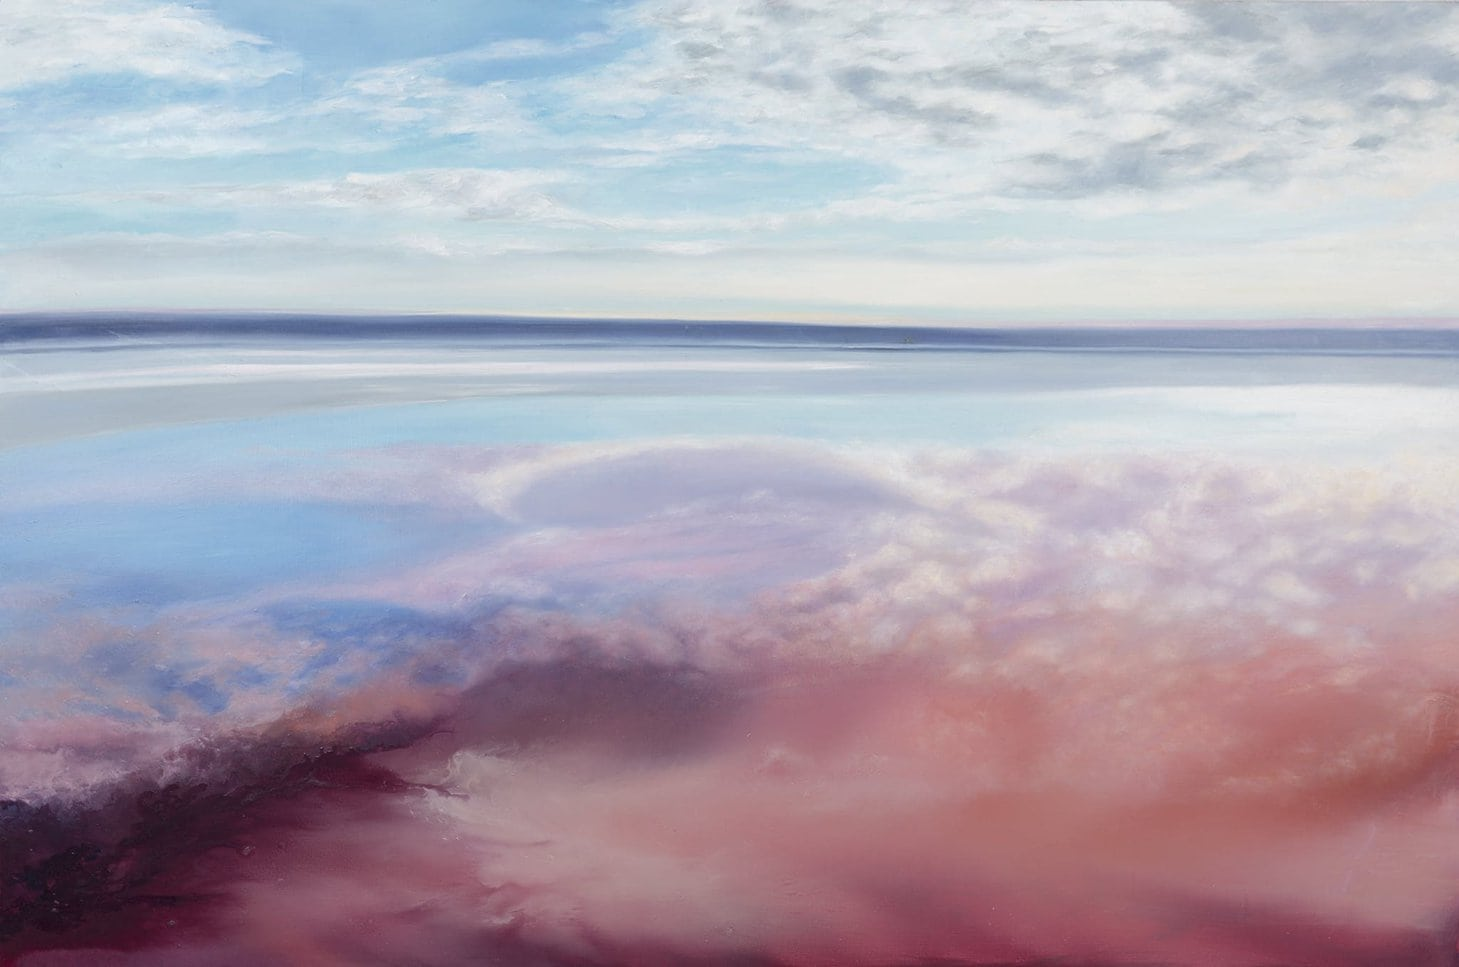 lake-eyre-south-australia-pink-lake